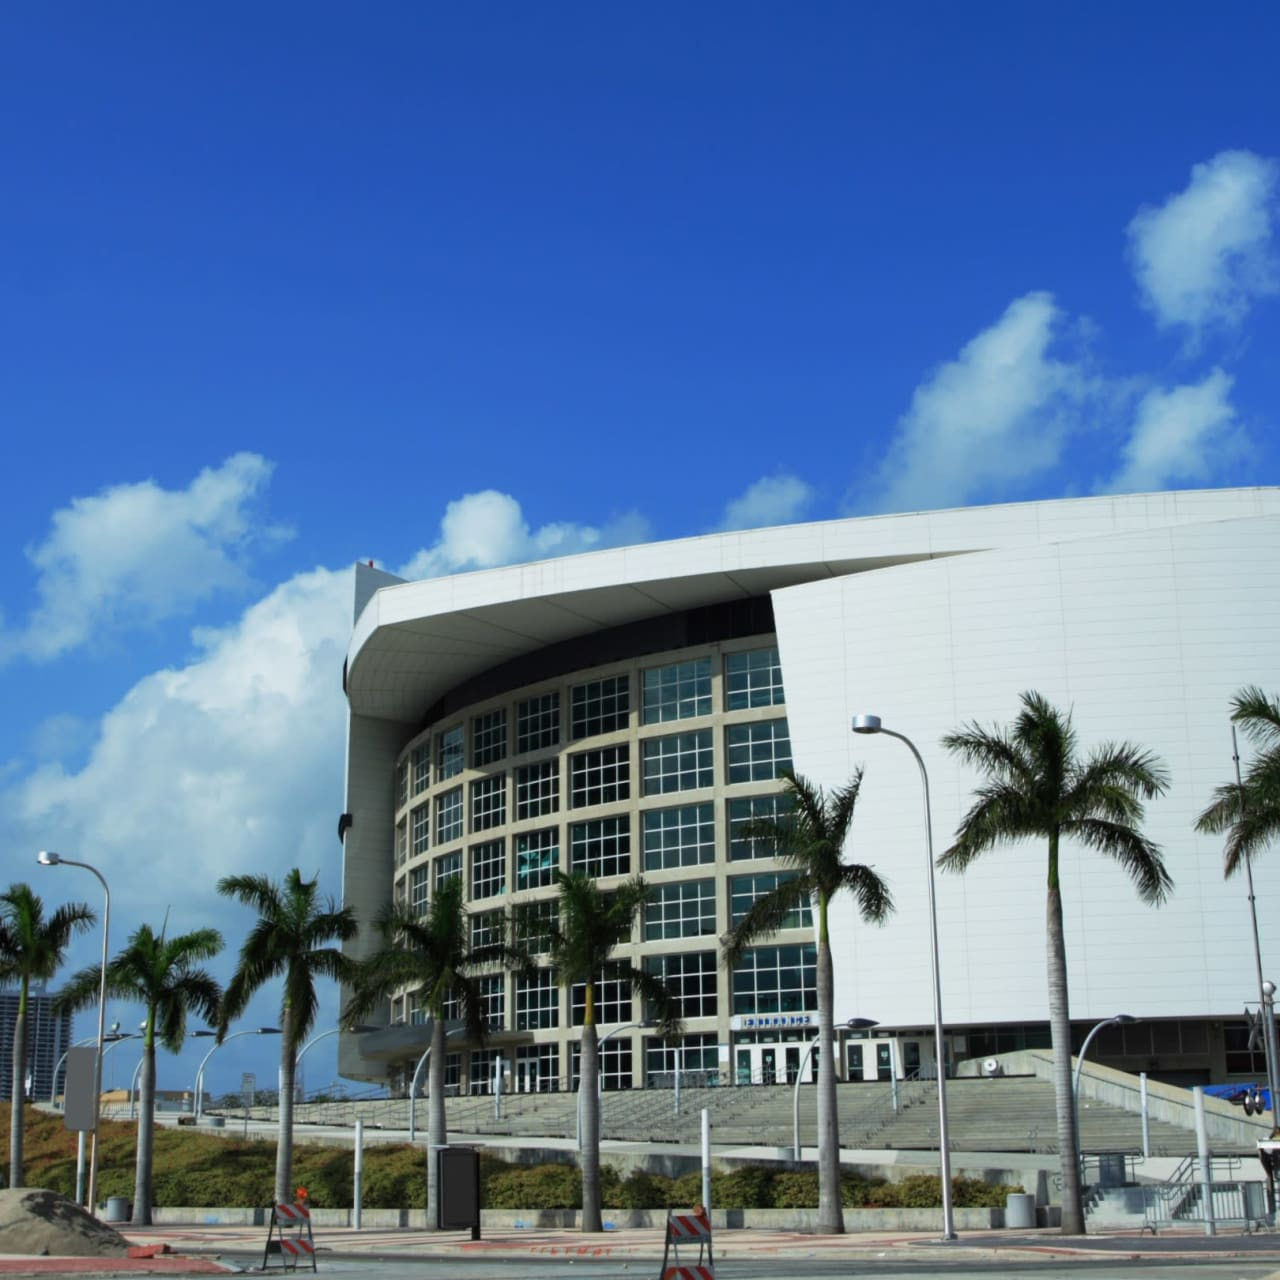 The American Airlines Arena has a new name